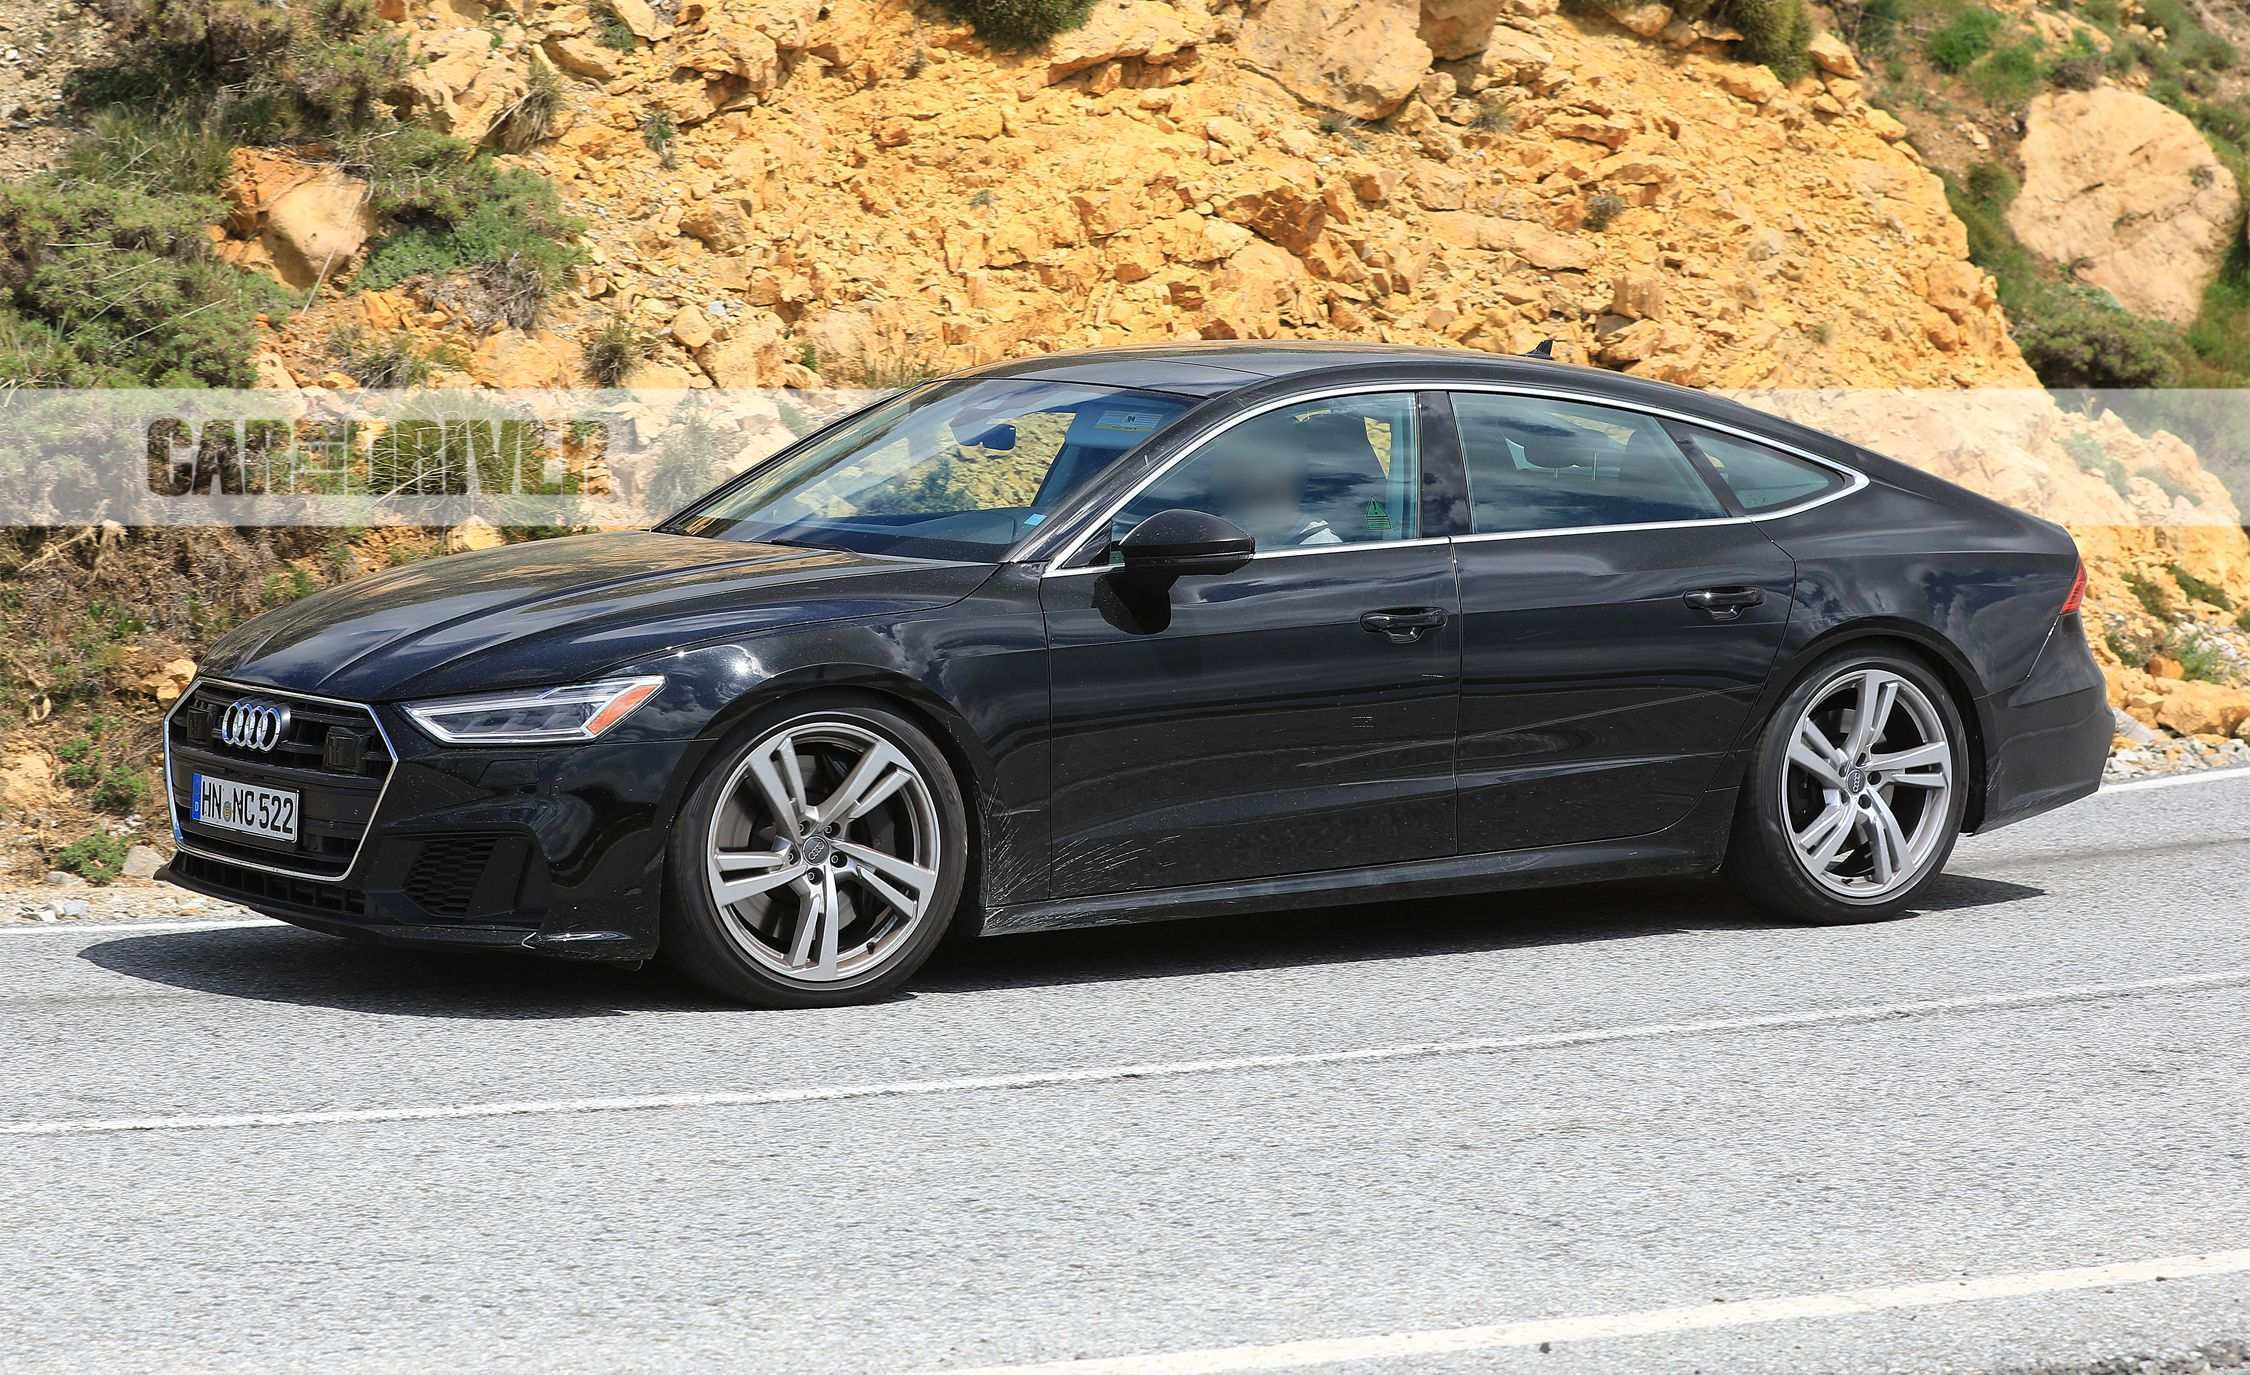 77 All New 2020 Audi A7 Colors Review And Release Date